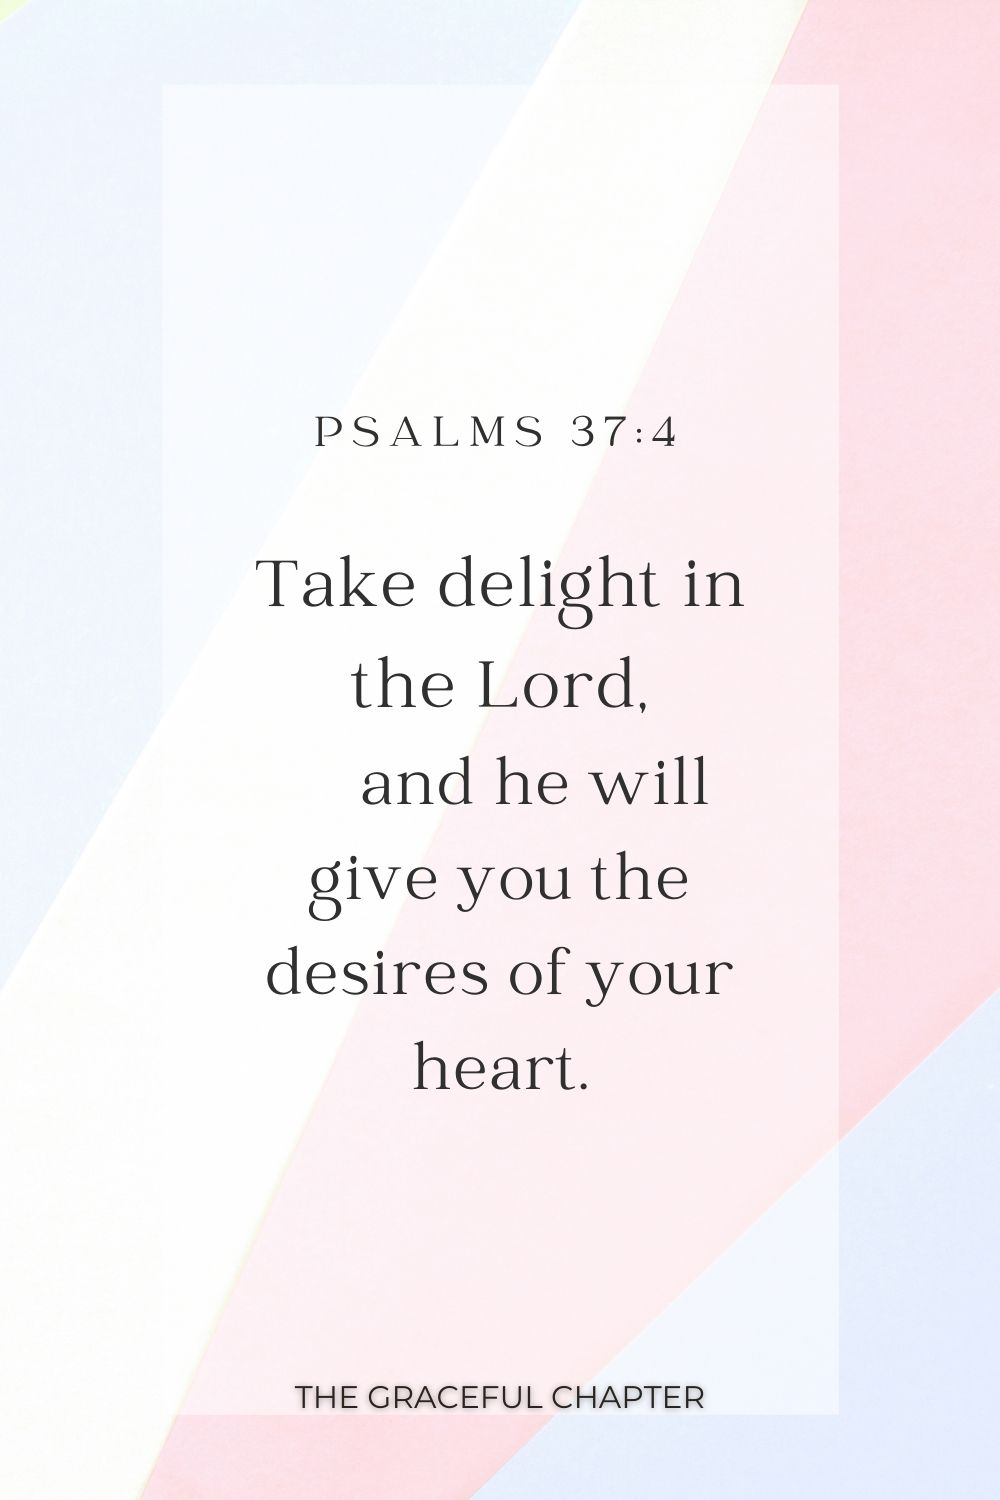 Take delight in the Lord,  and he will give you the desires of your heart. Psalms 37:4